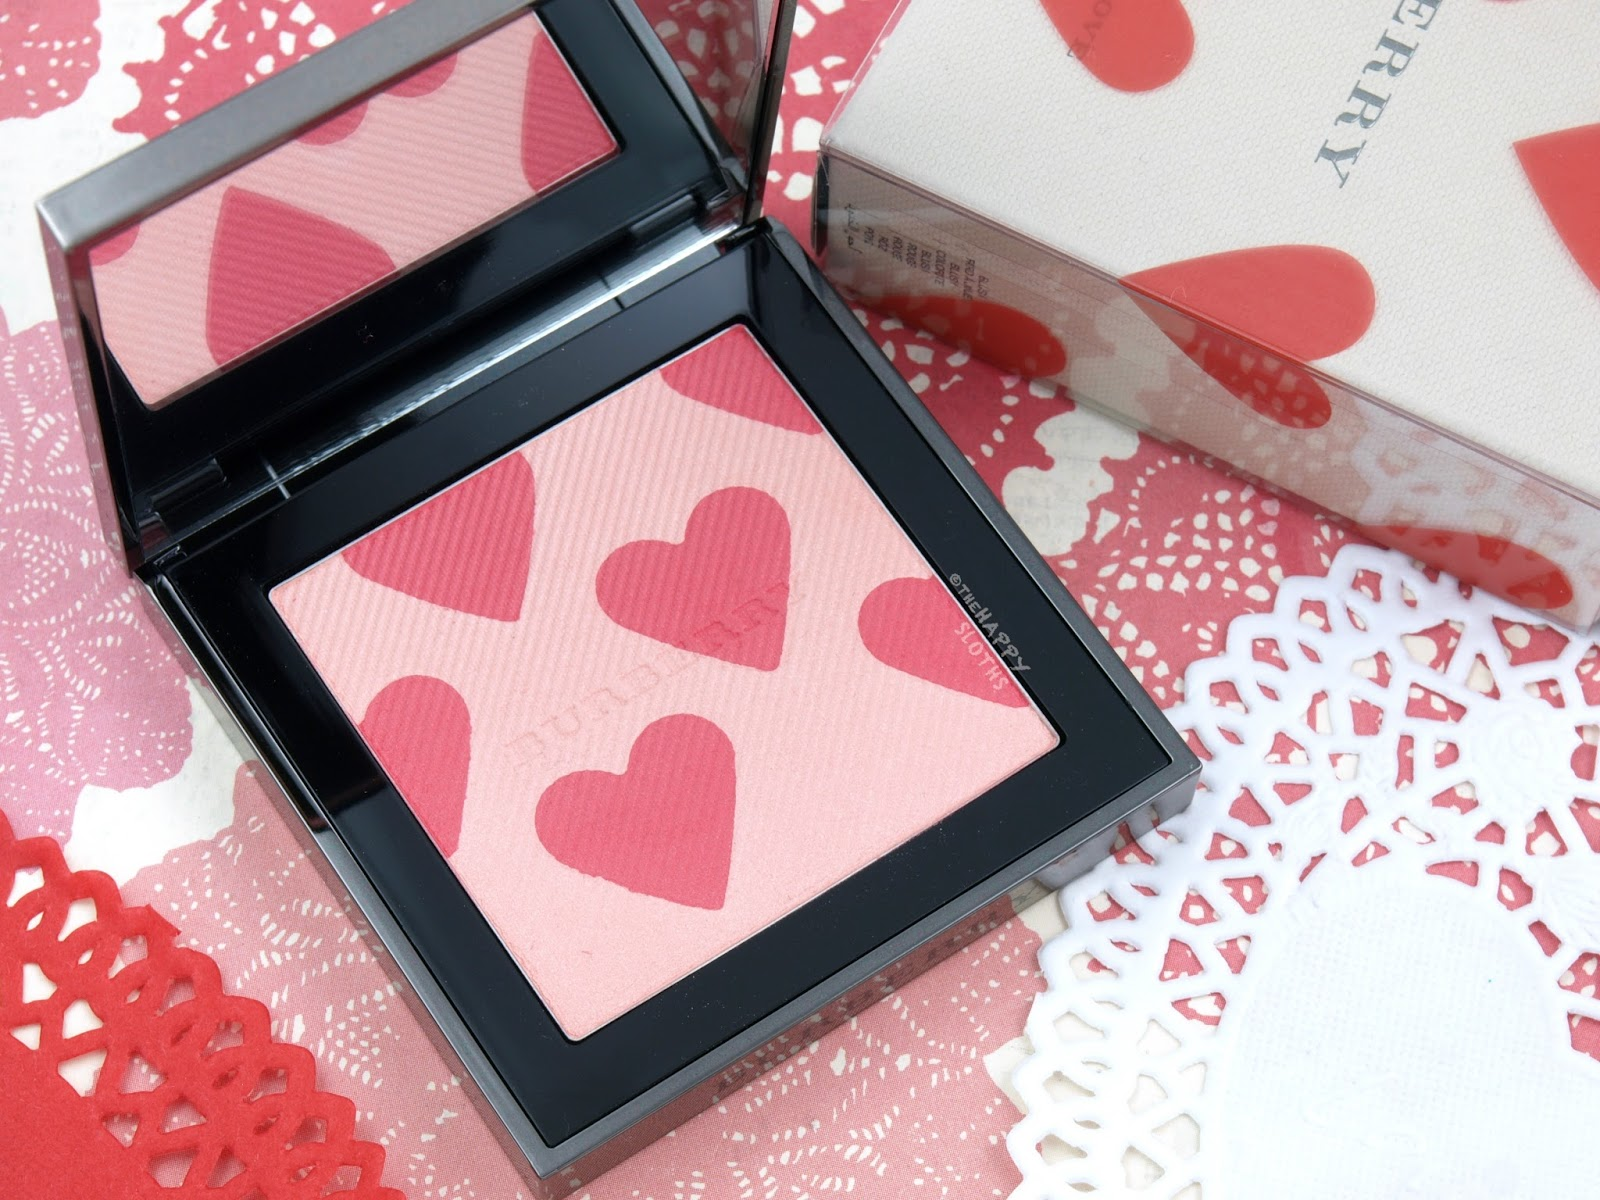 Burberry First Love Blush Highlighter: Review and Swatches